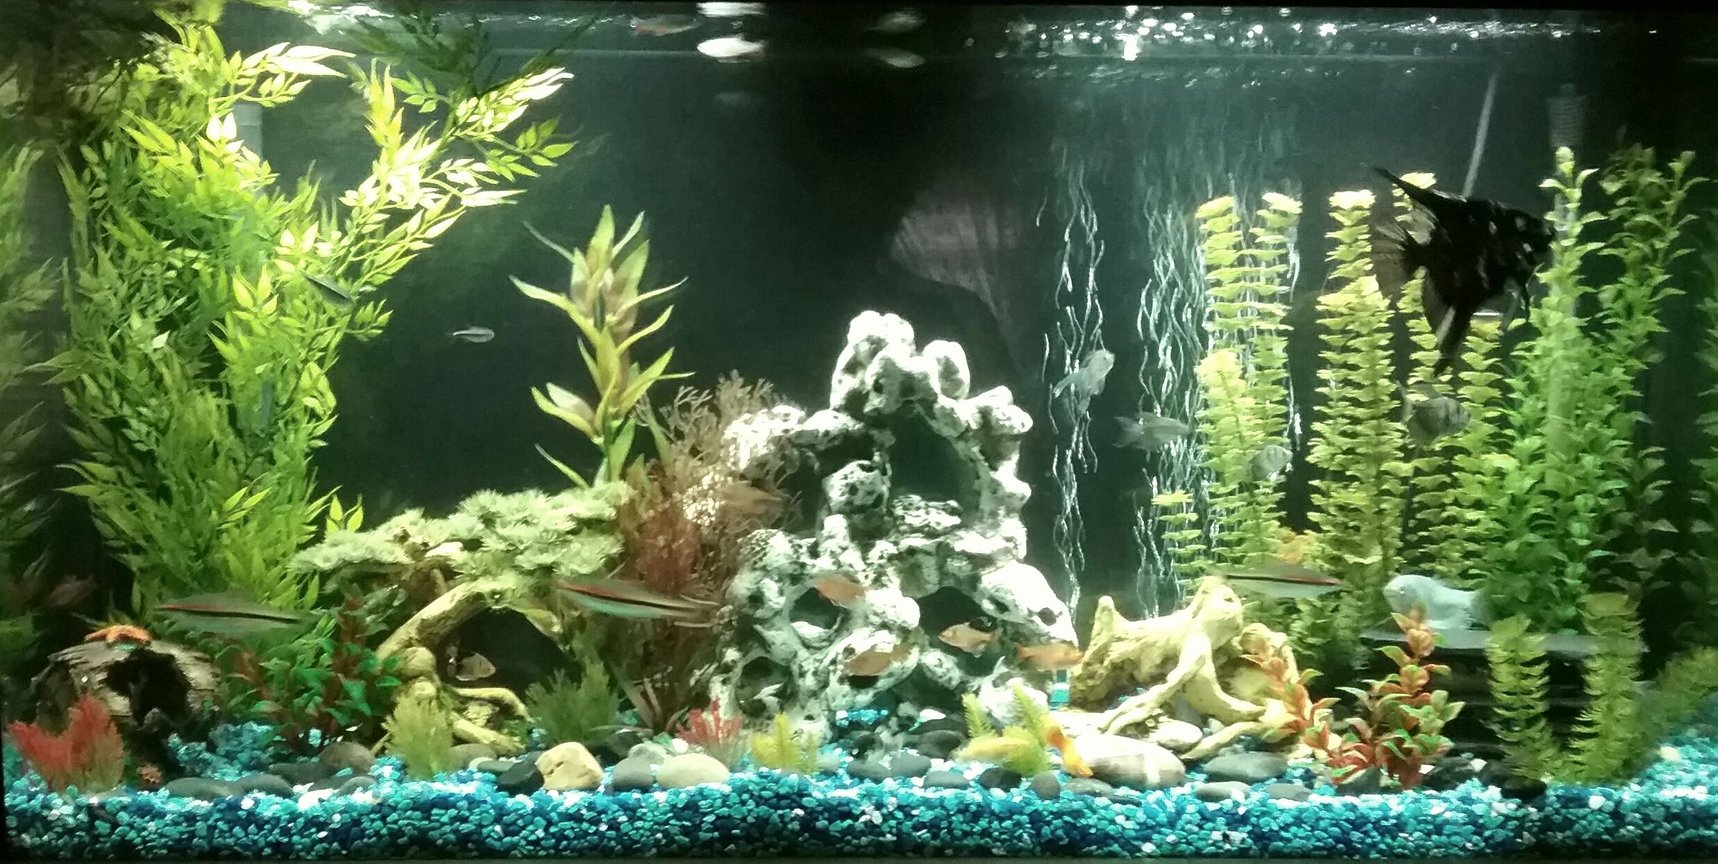 65 gallons freshwater fish tank (mostly fish and non-living decorations) - 60 gallon freshwater tank with fake plants. 5 bloodthin tetras 4 black neon tetras 1 angel fish 3 platys 5 Cory cats 3 Dennison Barb's 3 cherry Barb's 2 algae eaters 4 black skirt tetras 6 red minor tetras 4 gouramis